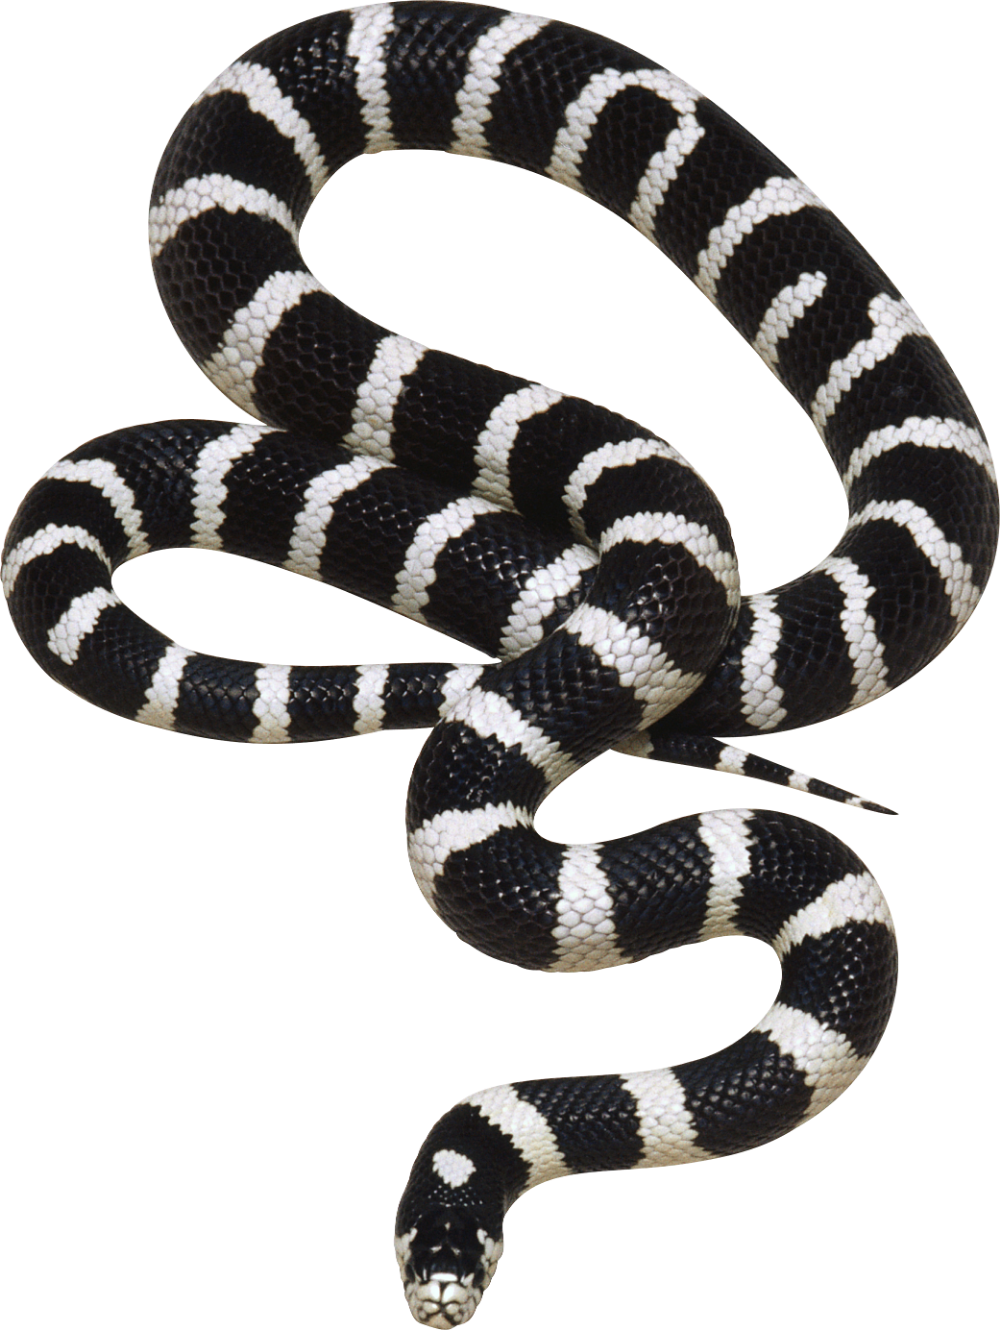 Snake Png Image Free Download Png Picture Snakes Black And Yellow Snake California King Snake Animals Black And White